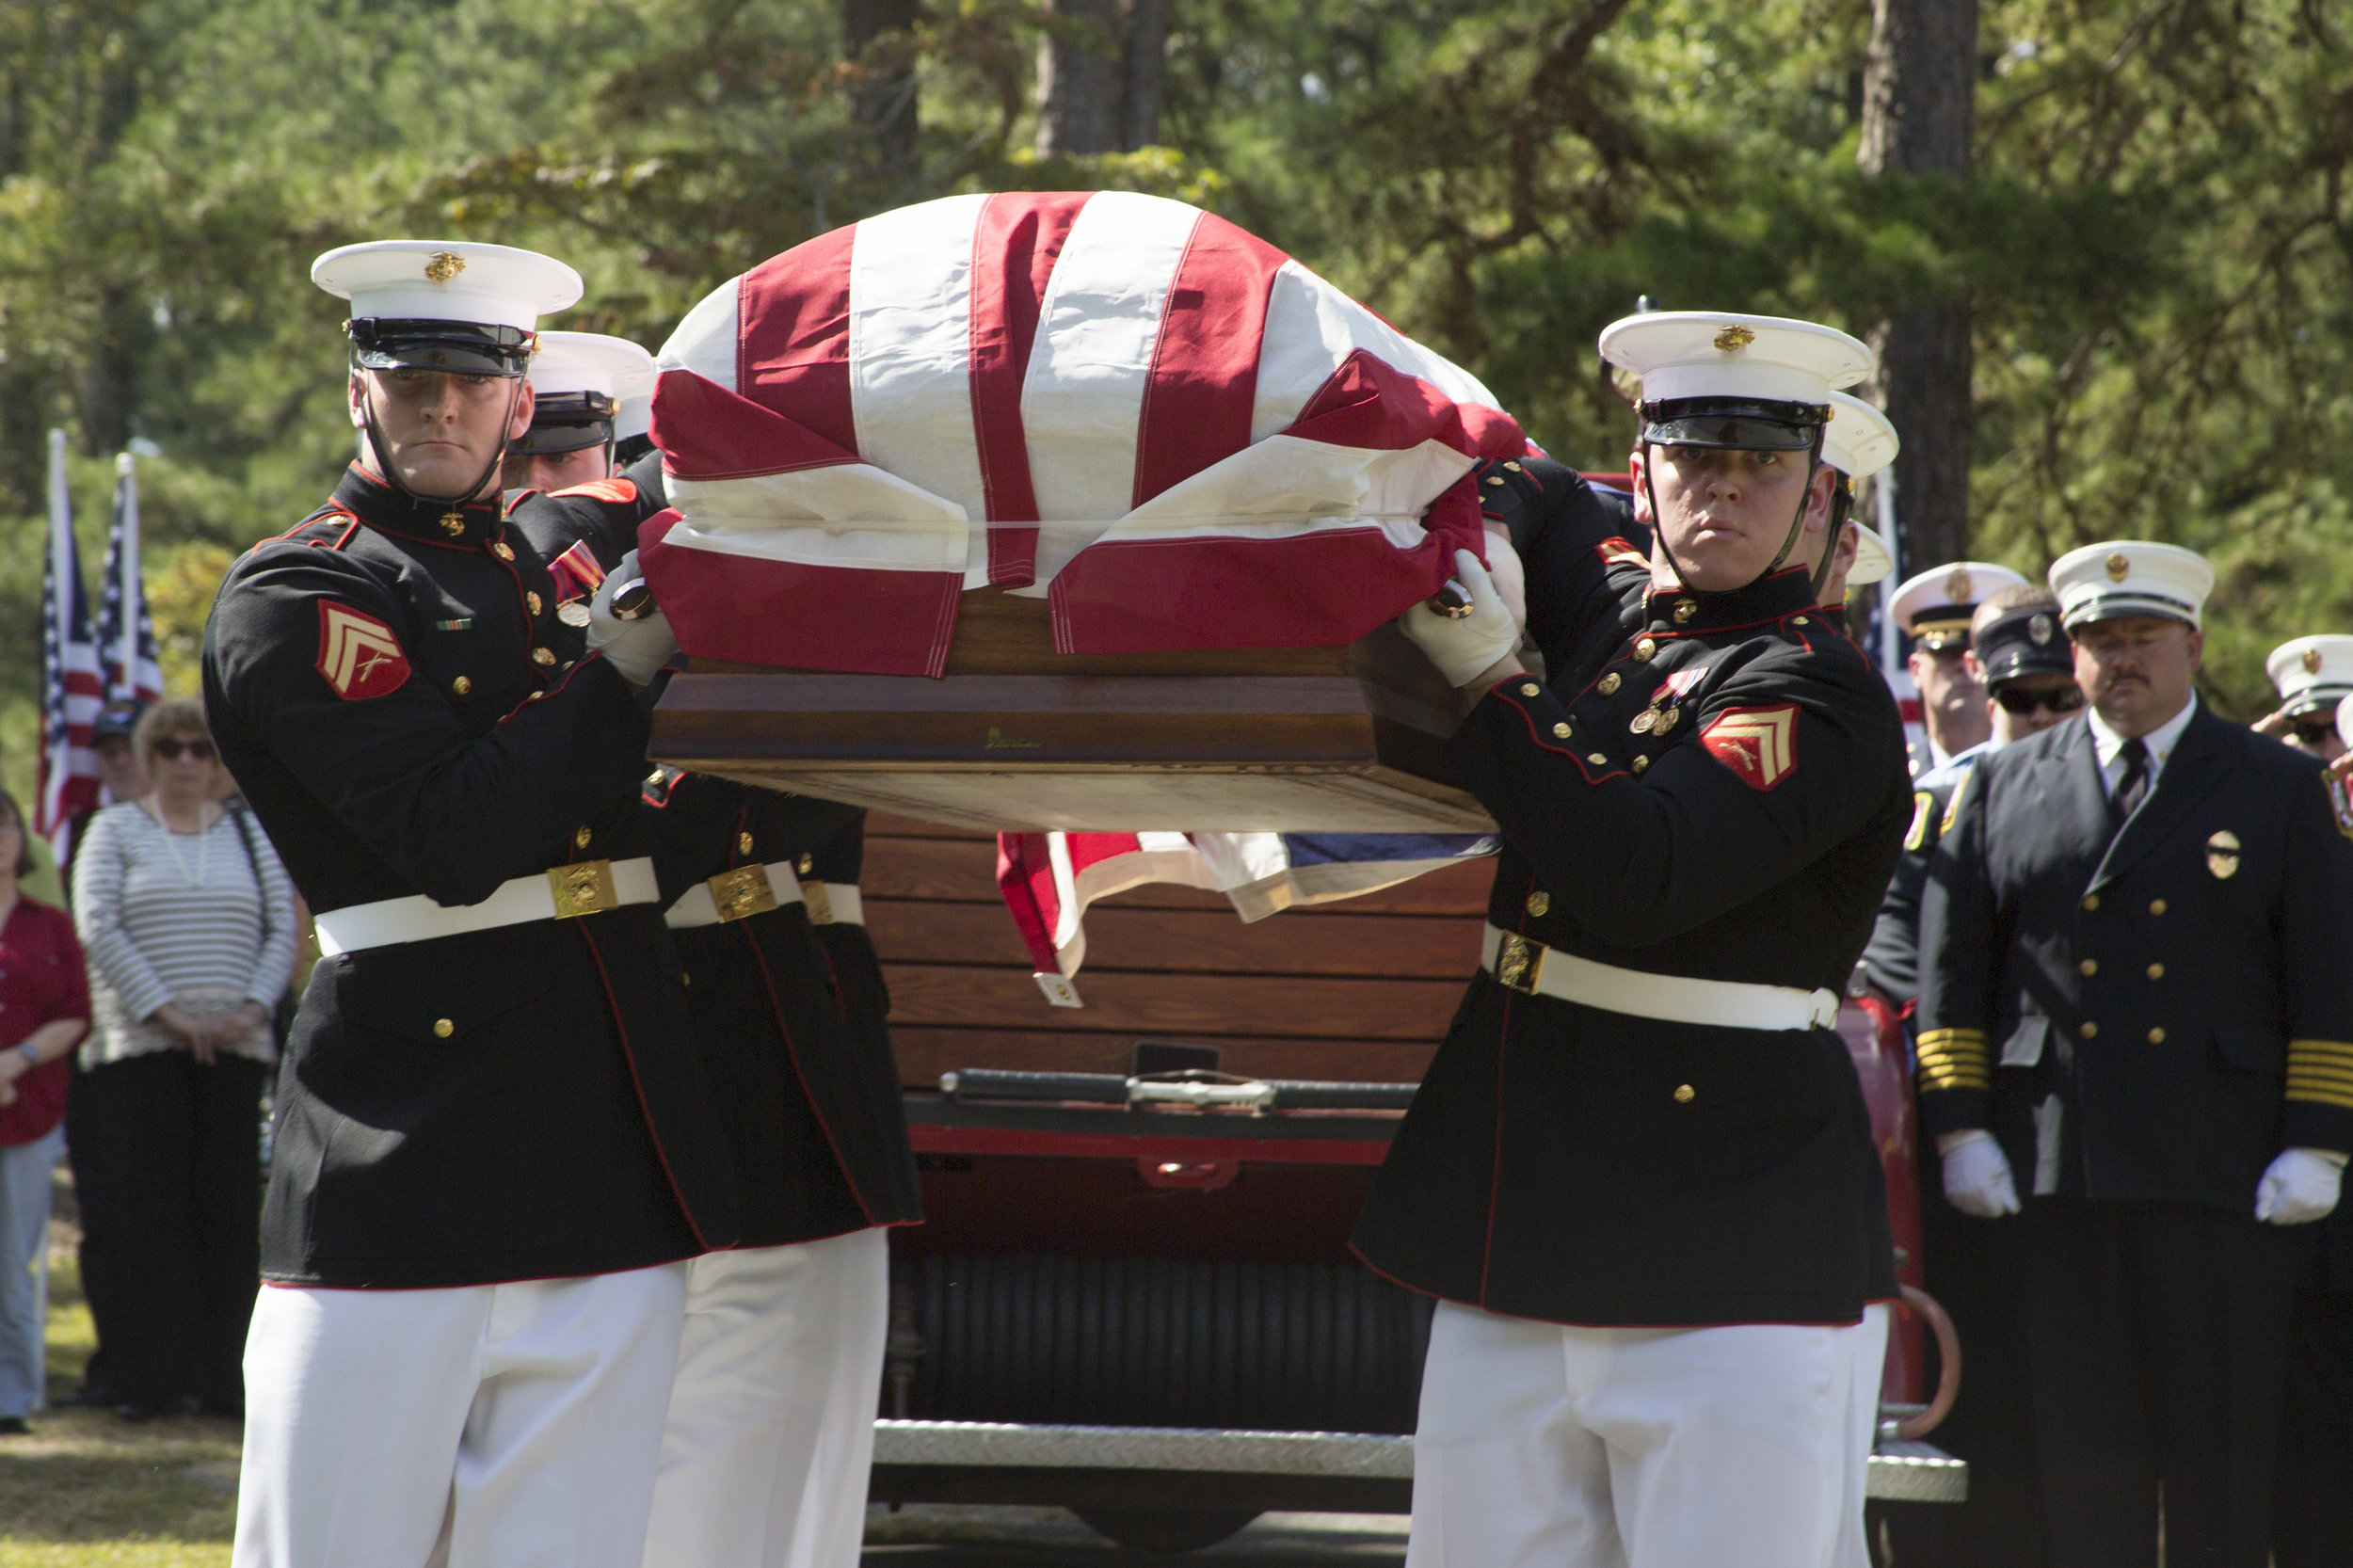 Body Bearers from Marine Barracks Washington, D.C., conduct the transfer of Cpl. William Ferrell at the Cross Hill Cemetery, Carthage, NC, Oct. 8, 2015  Photo By: Cpl. Chi Nguyen